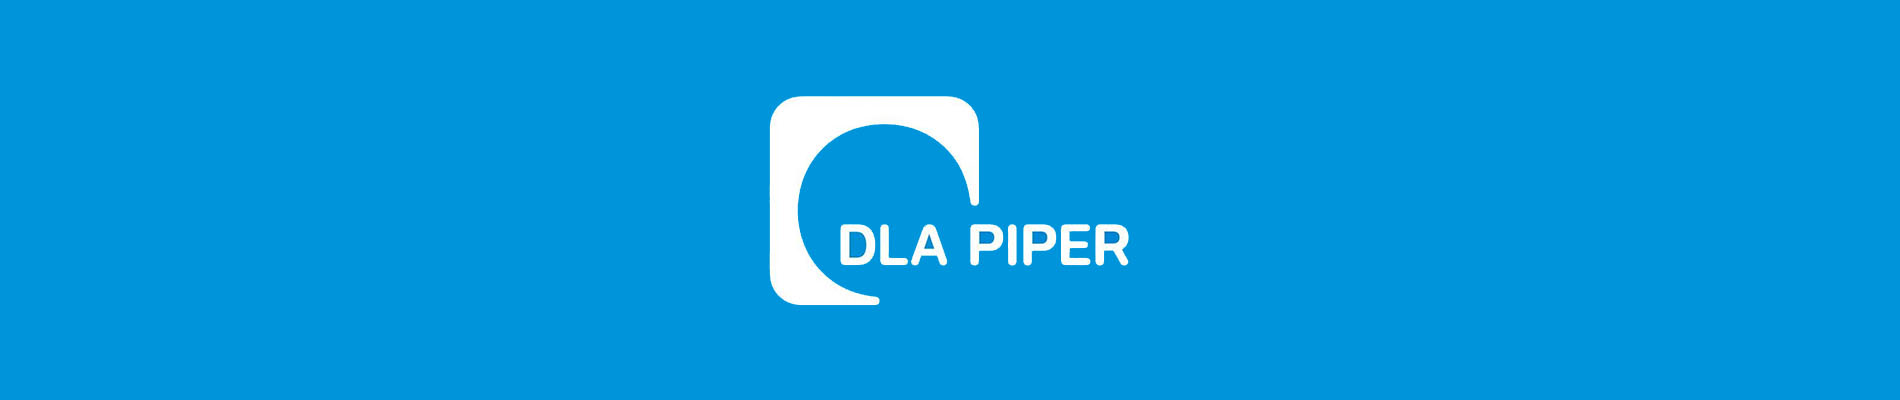 DLA Piper WIN in Manchester on July 4th